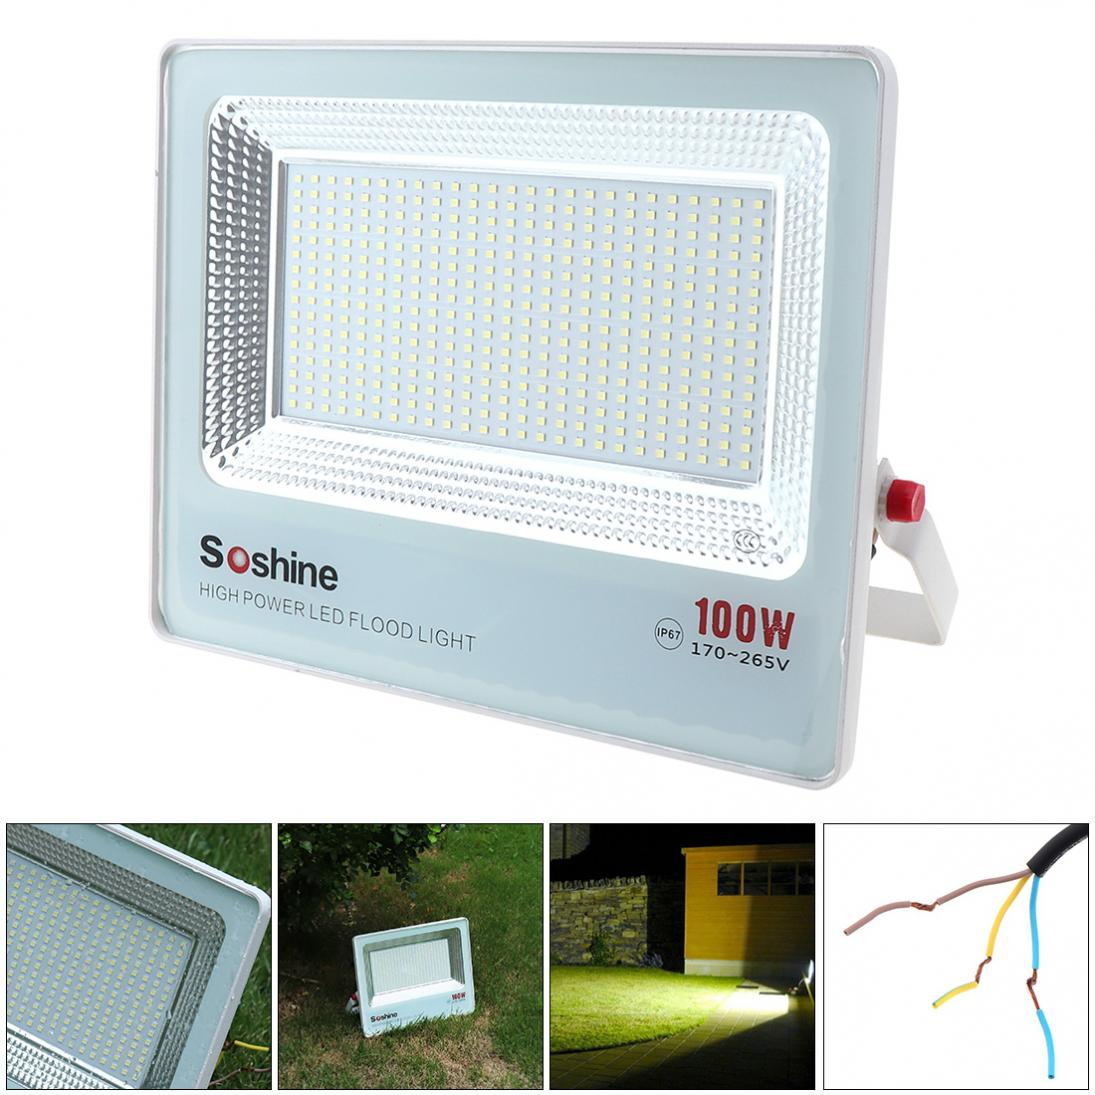 10000 LM AC180-265V Waterproof Outdoor 100W 400 PCT2835 LED Floodlight with 120 Degree Angle for Projectors Landscape Garden